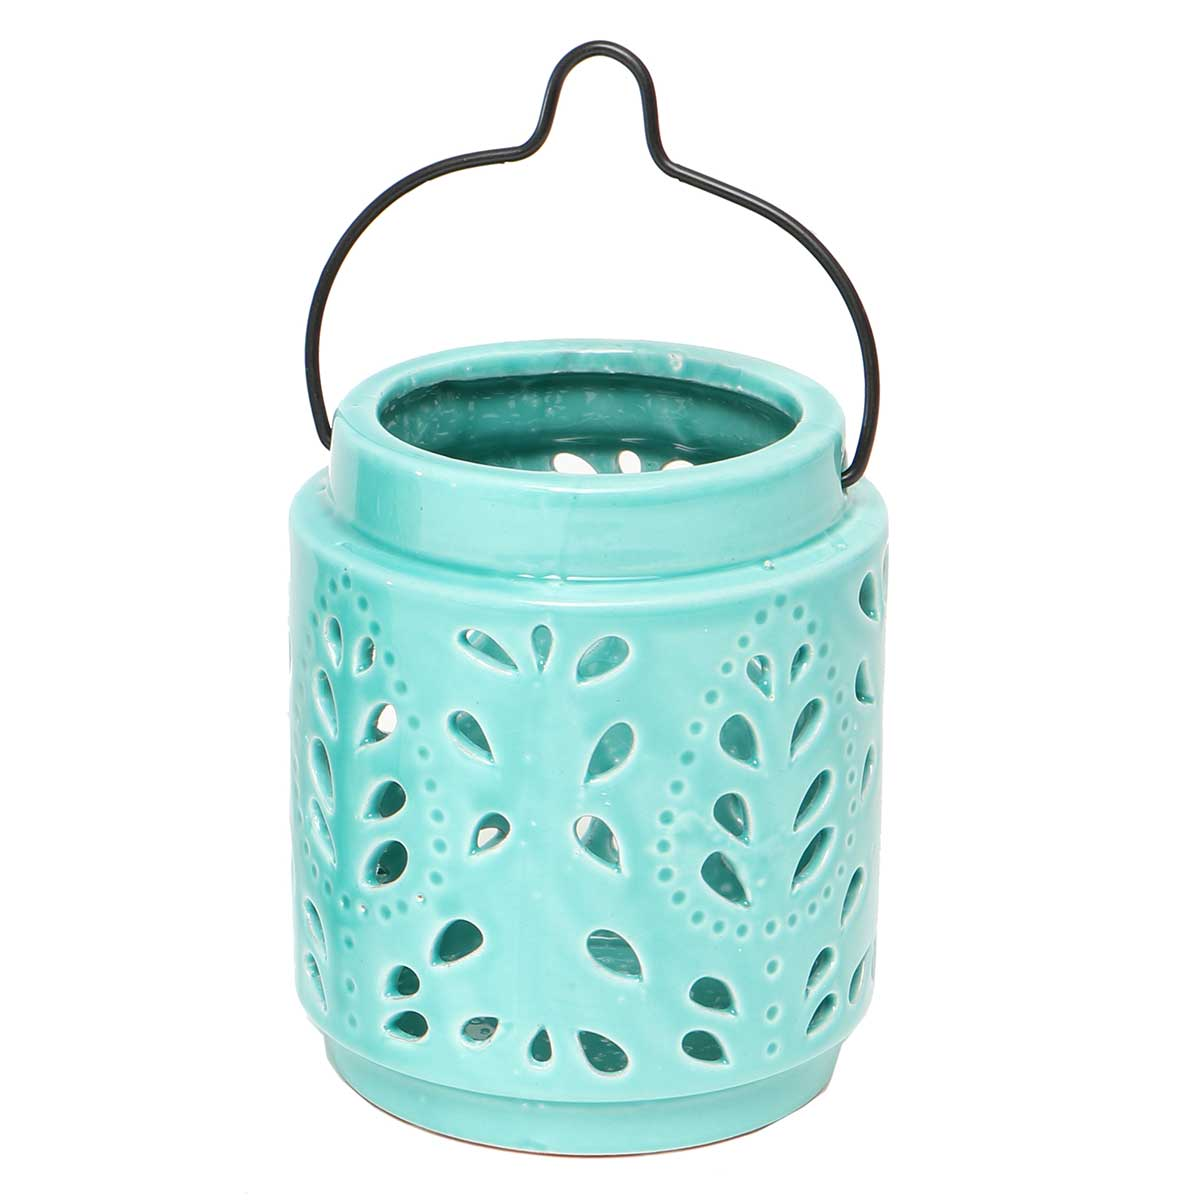 Teal Portico Lantern with Black Wire Handle 5�x5.5� A2075 TL